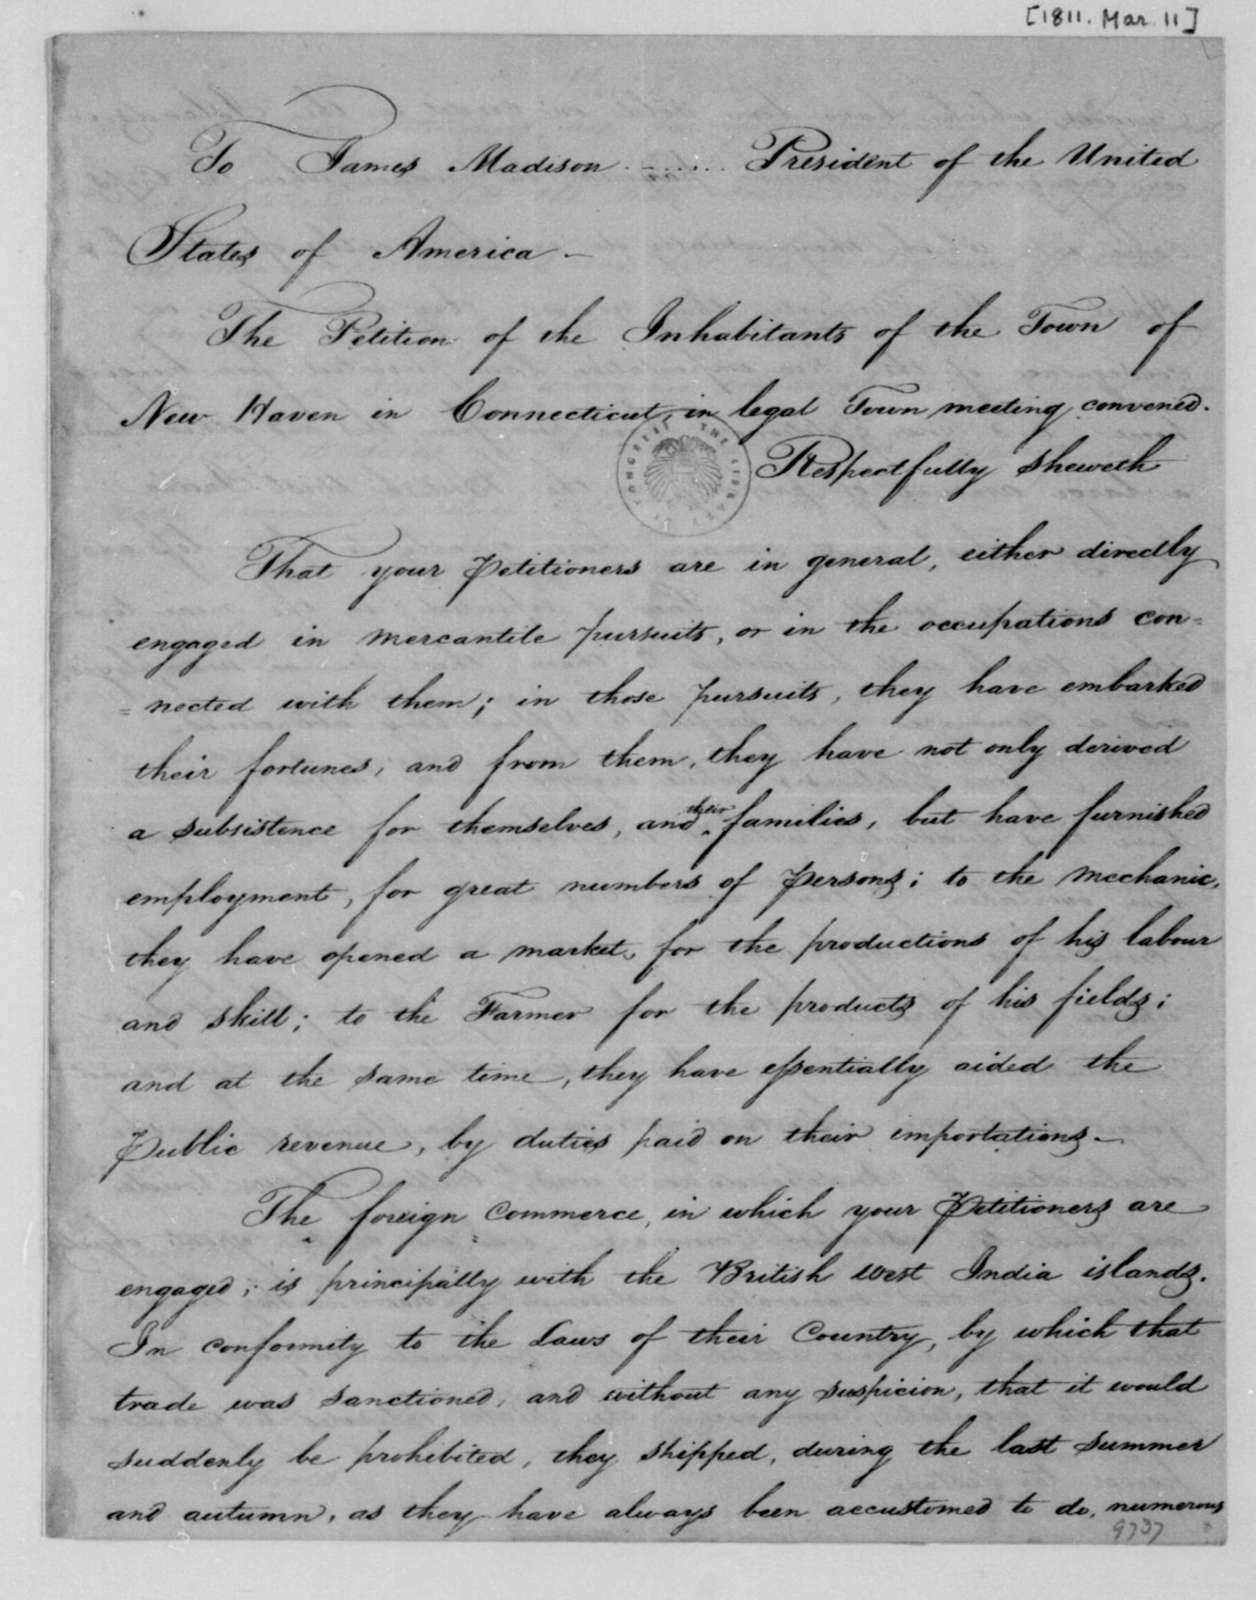 James Hillhouse and others to James Madison, March 11, 1811. Petition from New Haven Connecticut citizens.